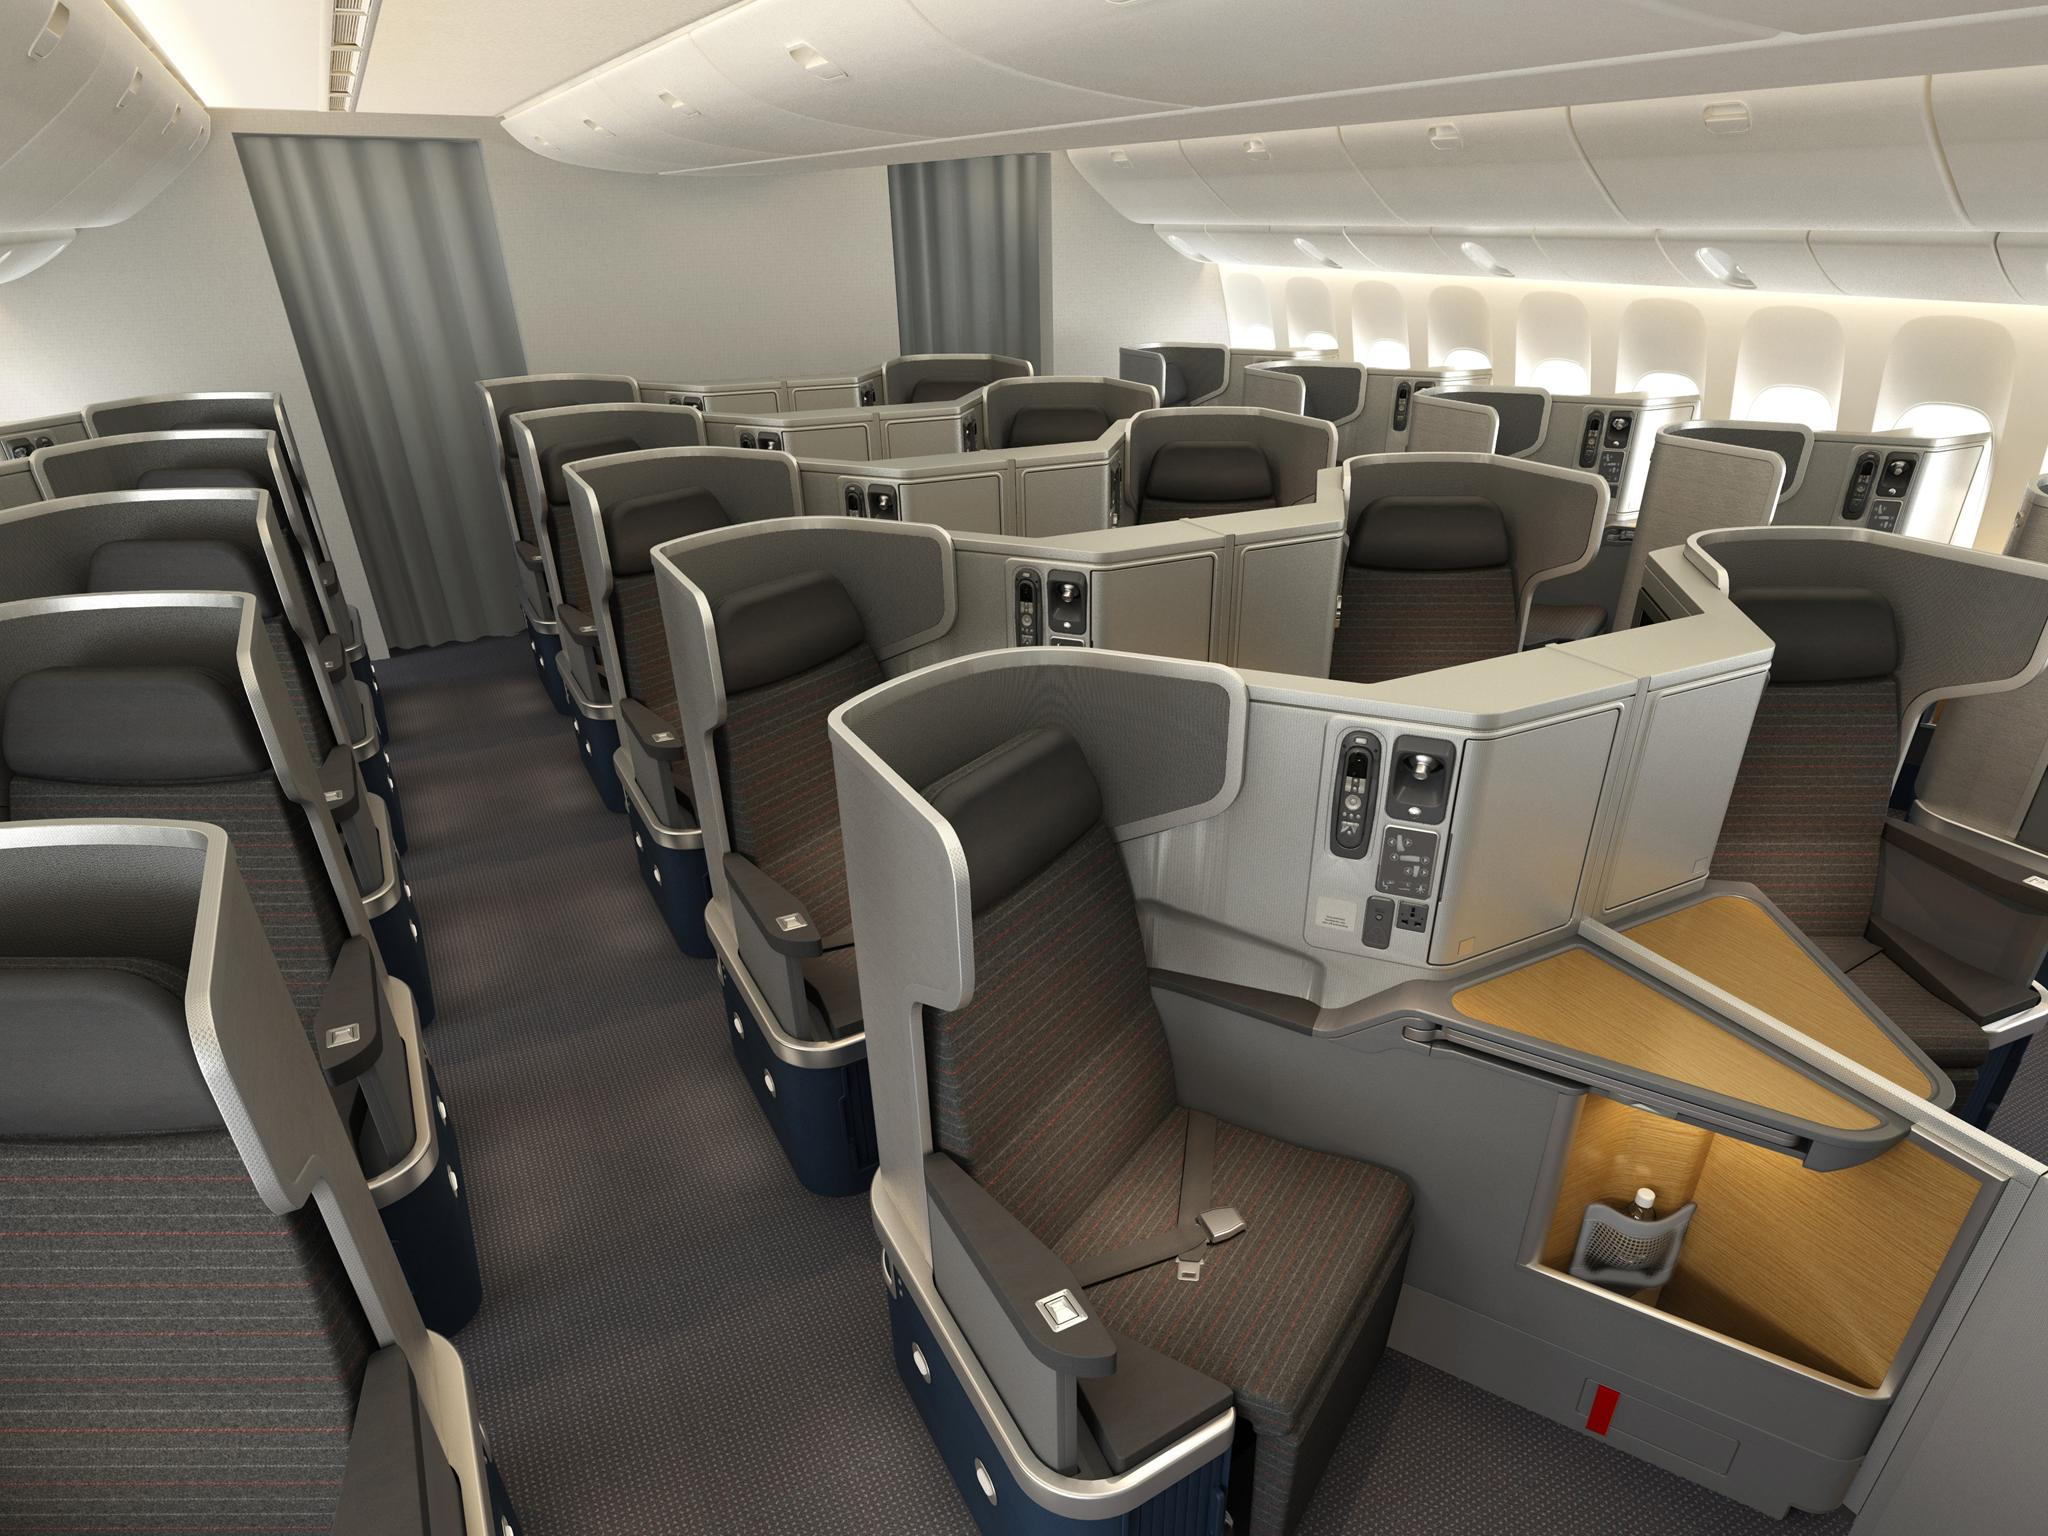 American's very competitive 777-300ER business class was extensively customized by Cathay Pacific. Image: American Airlines